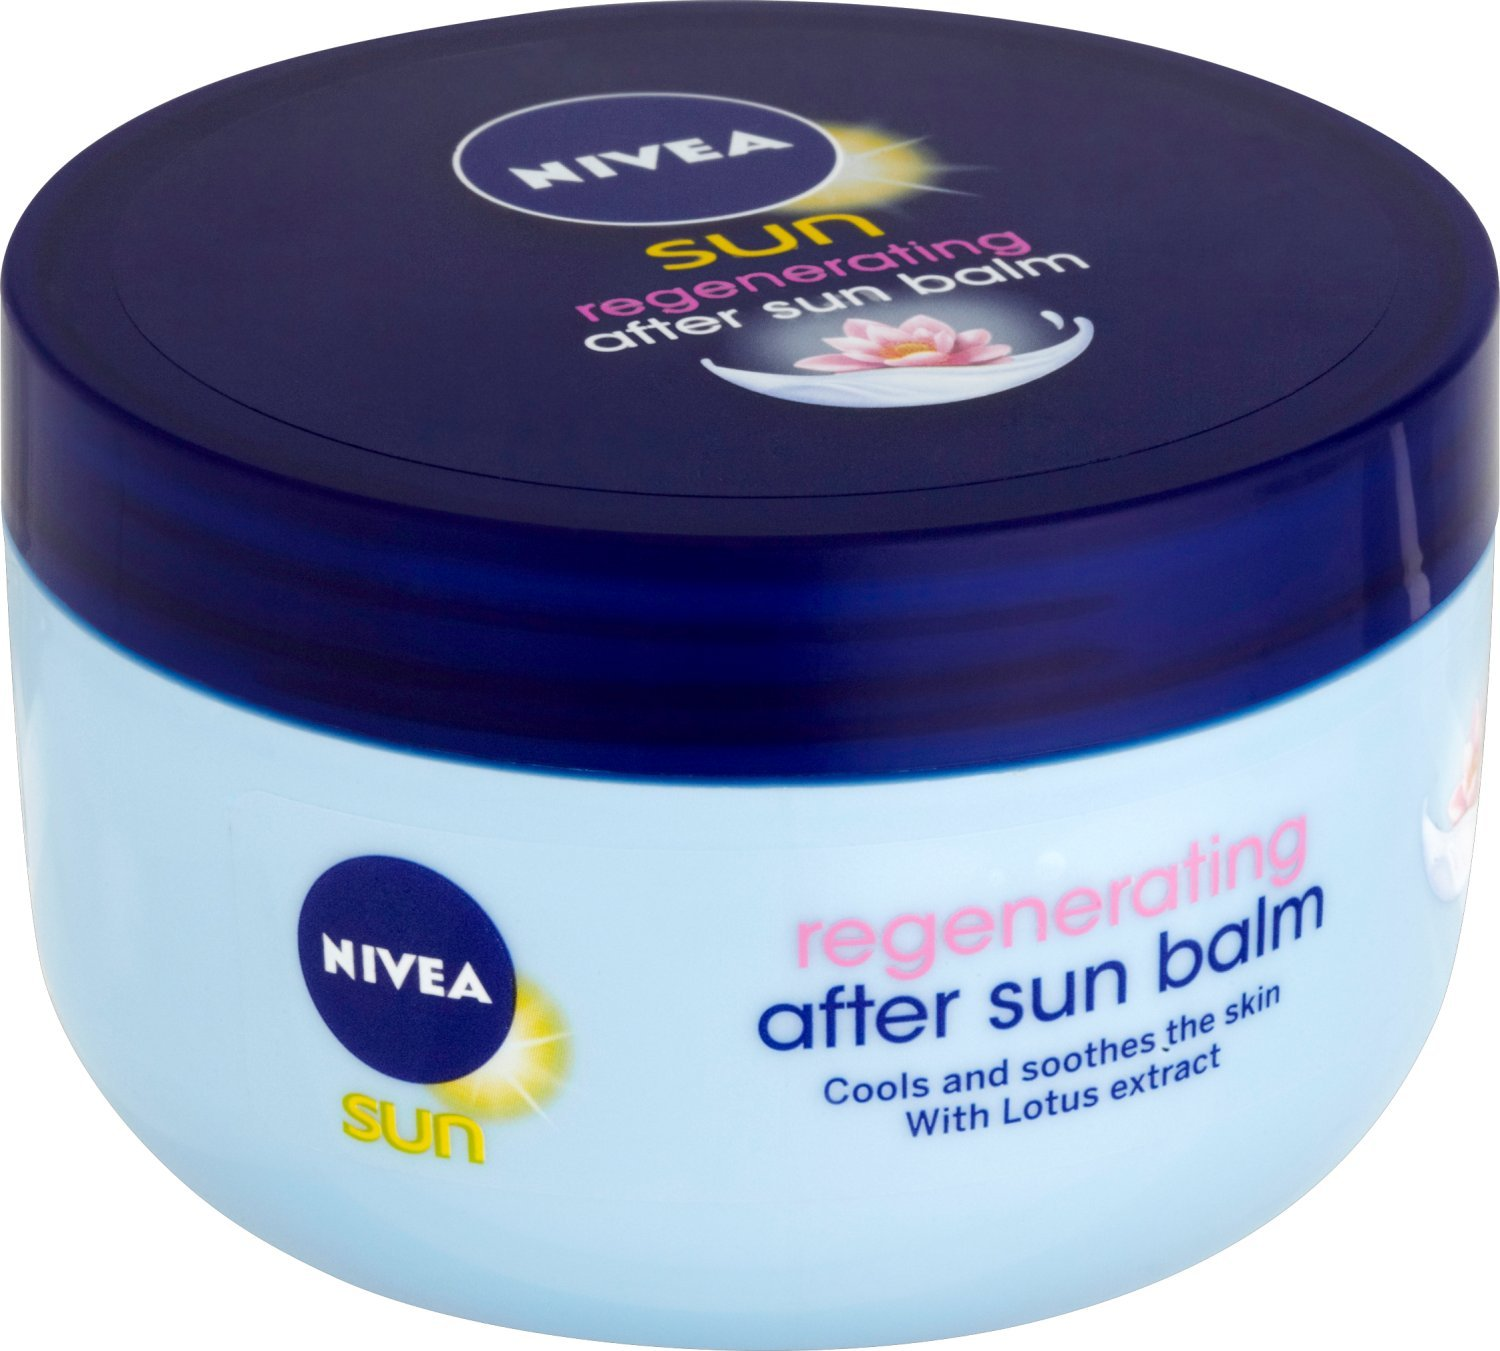 Nivea Sun Regenerating After Sun Balm - 300 ml BEIERSDORF UK 85646 Set2pz8856466